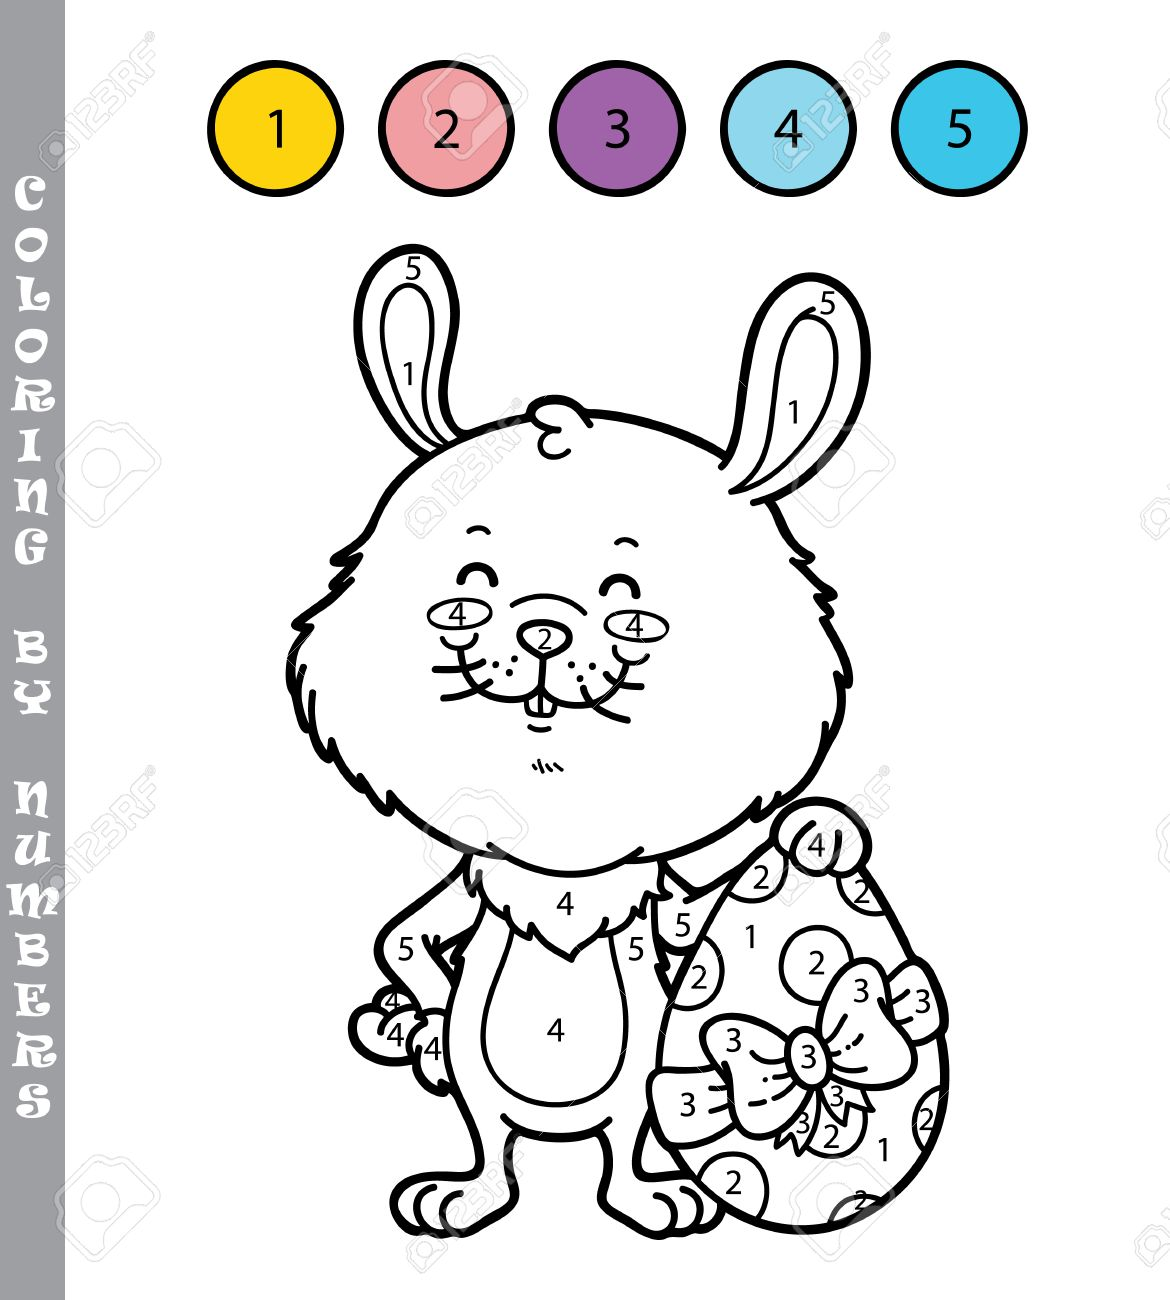 funny bunny coloring game vector illustration coloring by numbers game of happy cartoon easter bunny